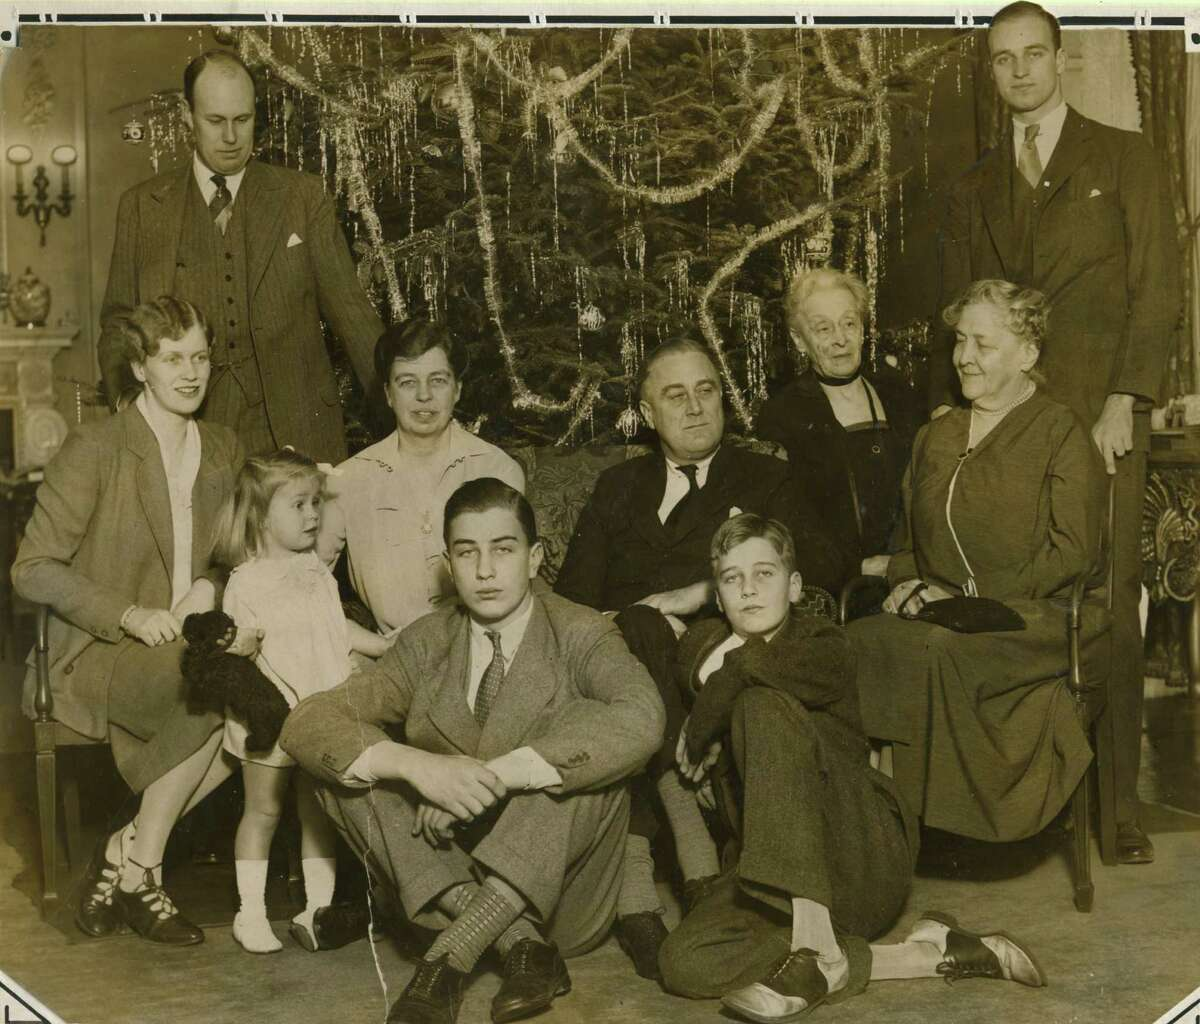 Click through the slideshow for photos from the holiday season in the Capital Region through the years. Roosevelt family Christmas photo dated 1930. Franklin Delano Roosevelt, center, right, wife, Eleanor Roosevelt, center left, and mother, Sara Ann Delano, right. (Times Union archive)